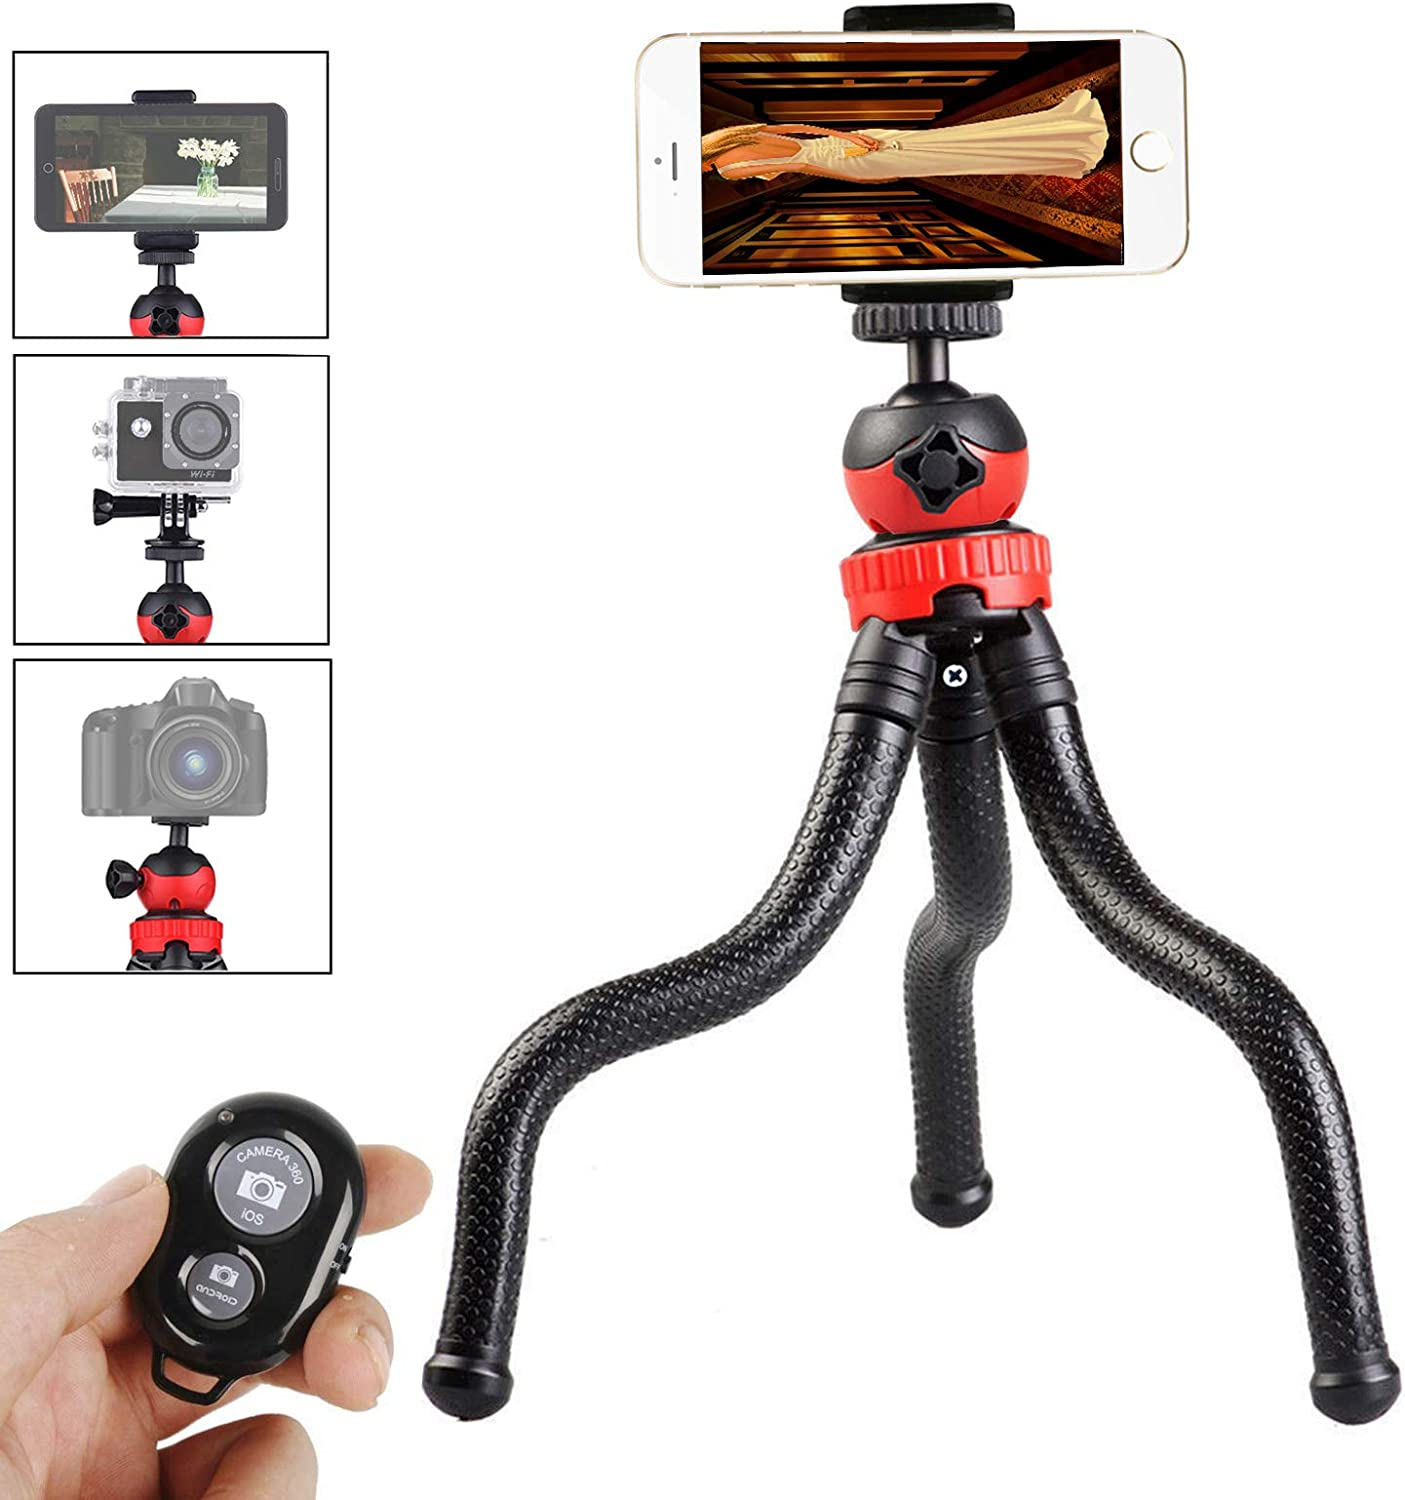 "Gurmoir 12"" Flexible Tripod for Mobile Phone iPhone 7 Gopro 7 6 5, 3in1 Tripod Stand with Wireless Remote with Cell Phone Holder for iPhone 8 7 6 6s and Android Phone and Gopro DLSR Cameras"